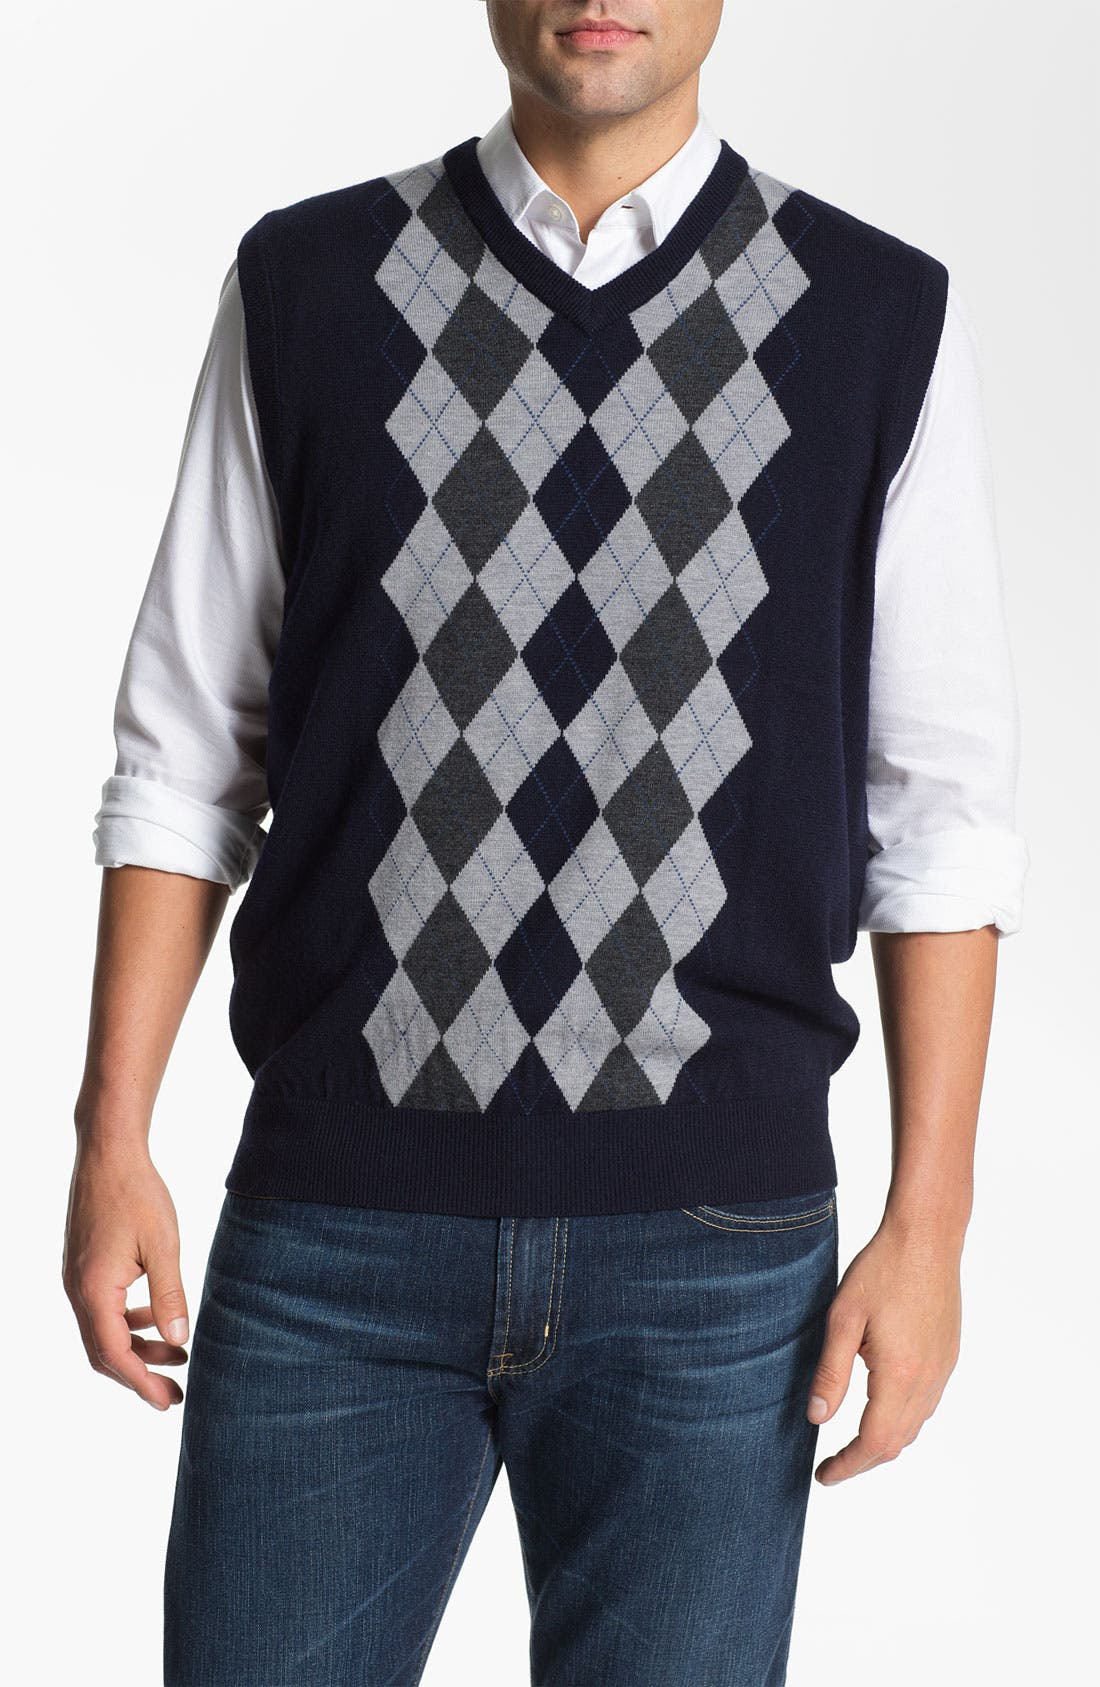 Alternate Image 1 Selected - Toscano V-Neck Wool Blend Sweater Vest